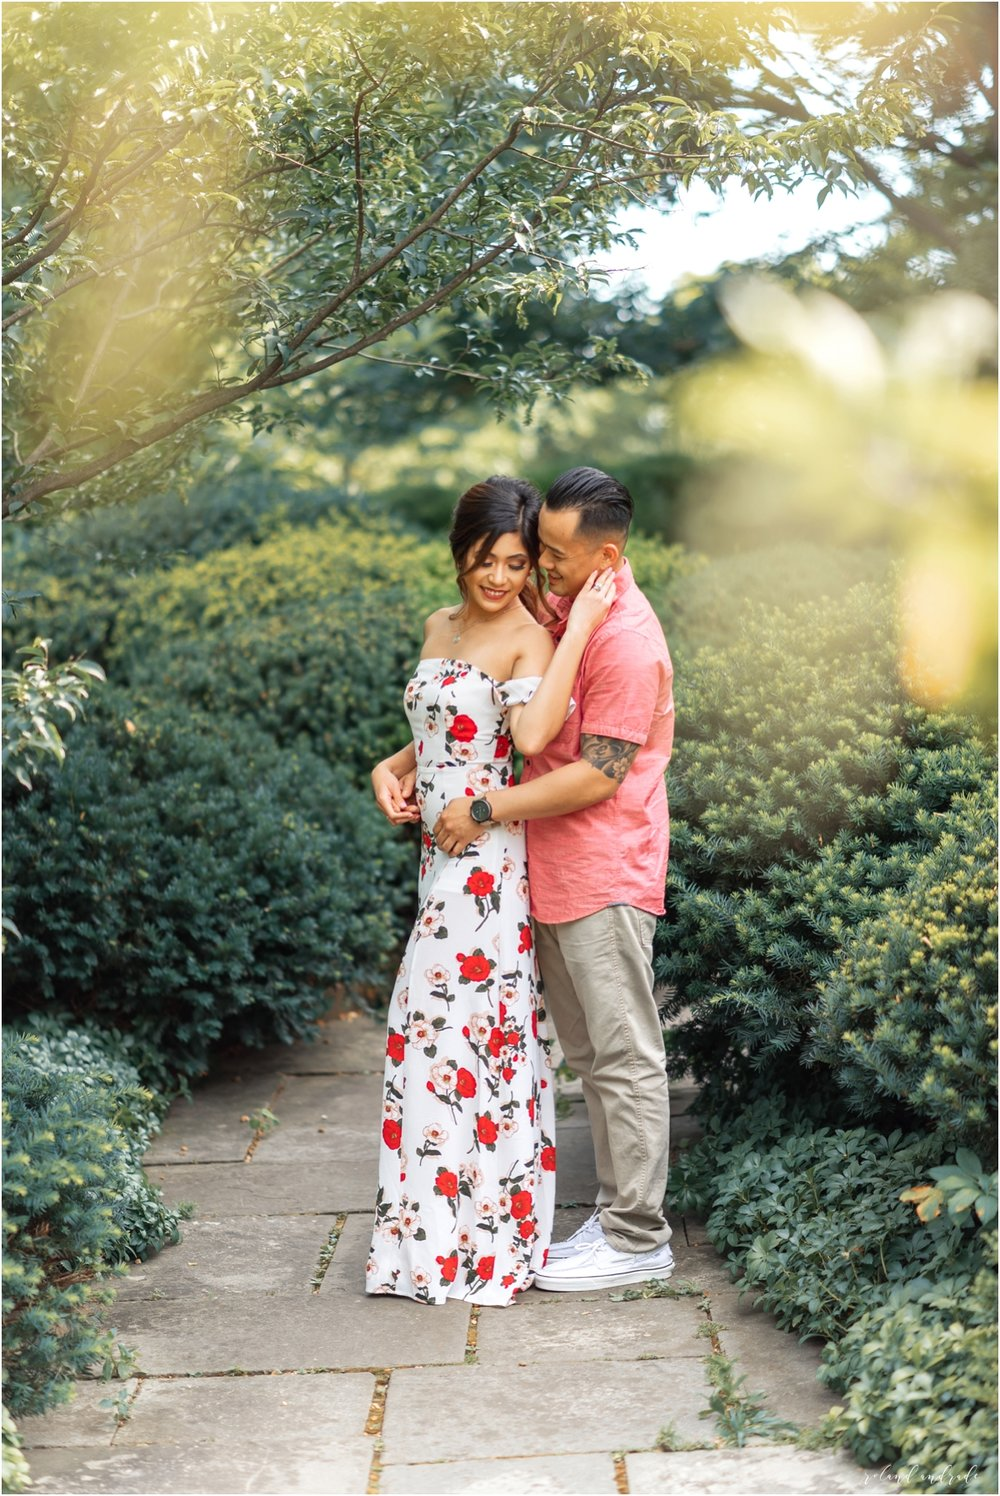 Cantigny Park Engagement Session, Wheaton Illinois Engagement Session, Chicago Wedding Photographer, Naperville Wedding Photographer, Aurora Wedding Photographer_0008.jpg